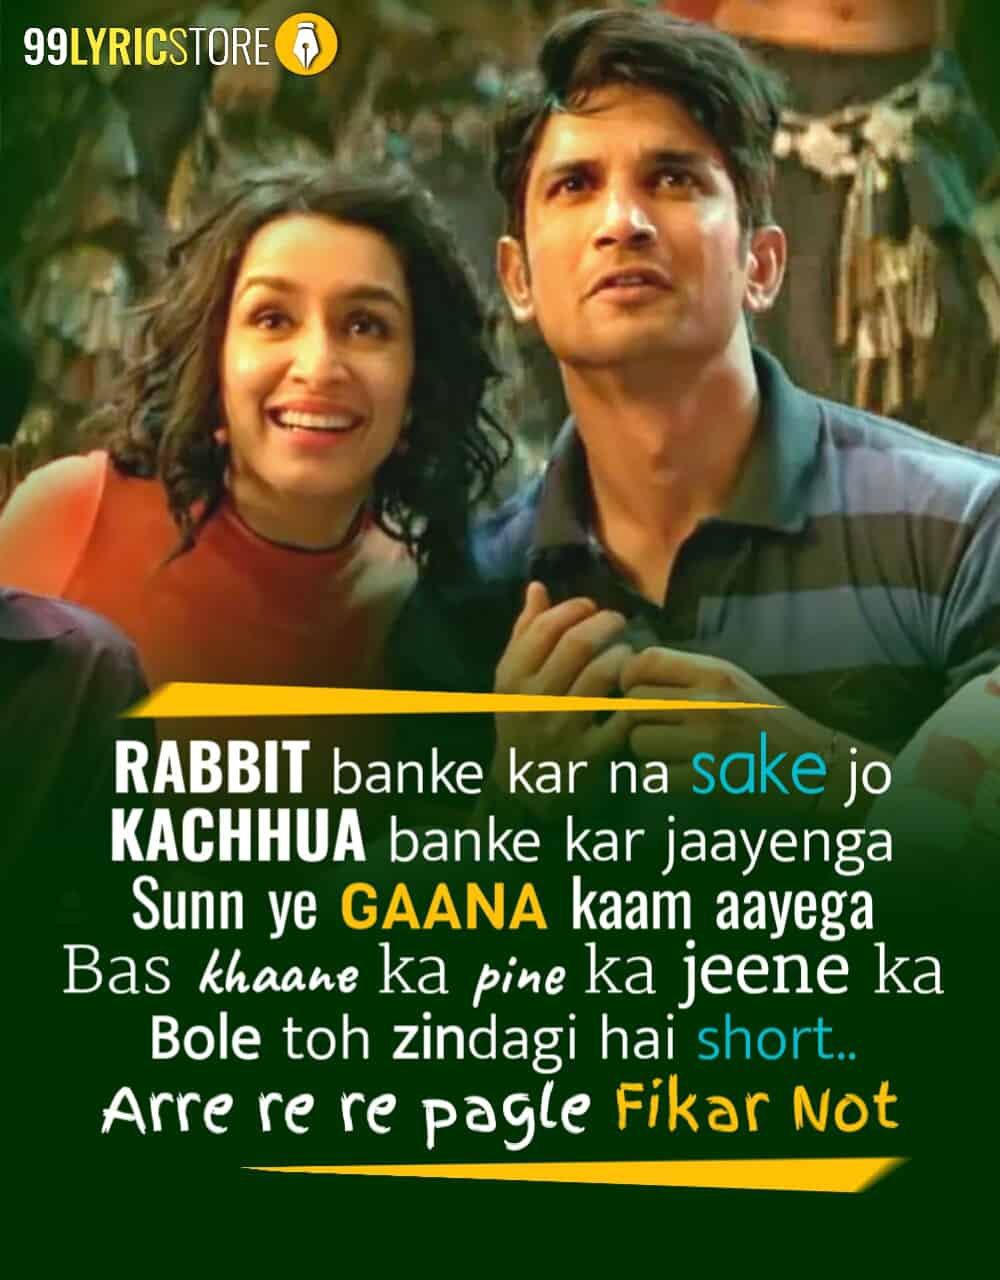 Fikar Not Song From Movie Chhichhore Starring Sushant Singh Rajput and Shraddha Kapoor